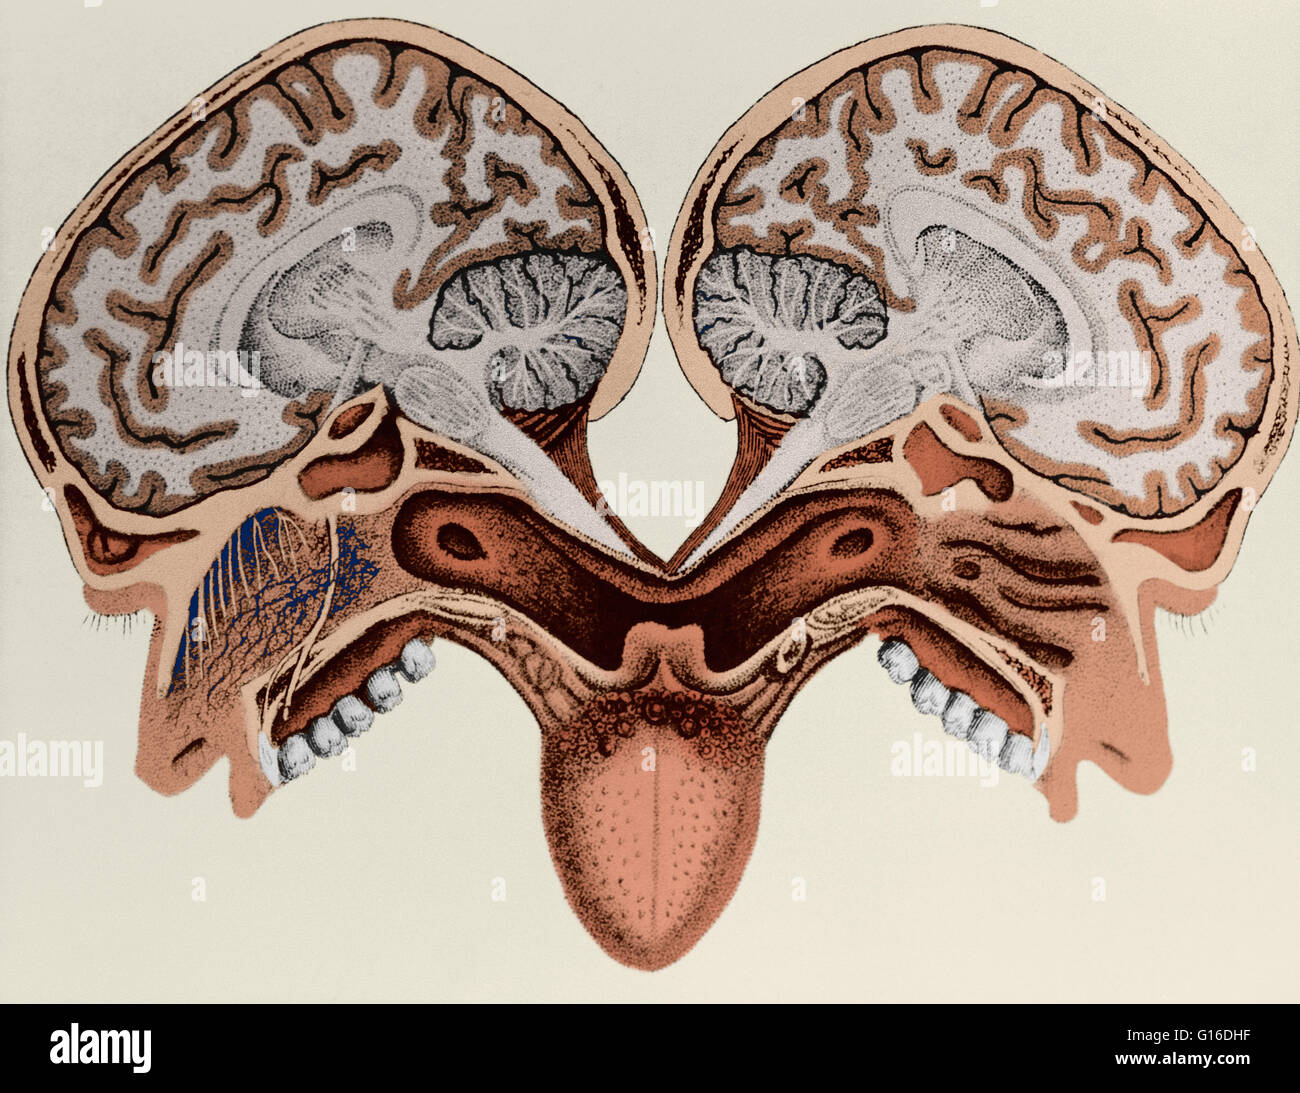 Illustration Of A Human Head In Cross Section By Paolo Masscagni